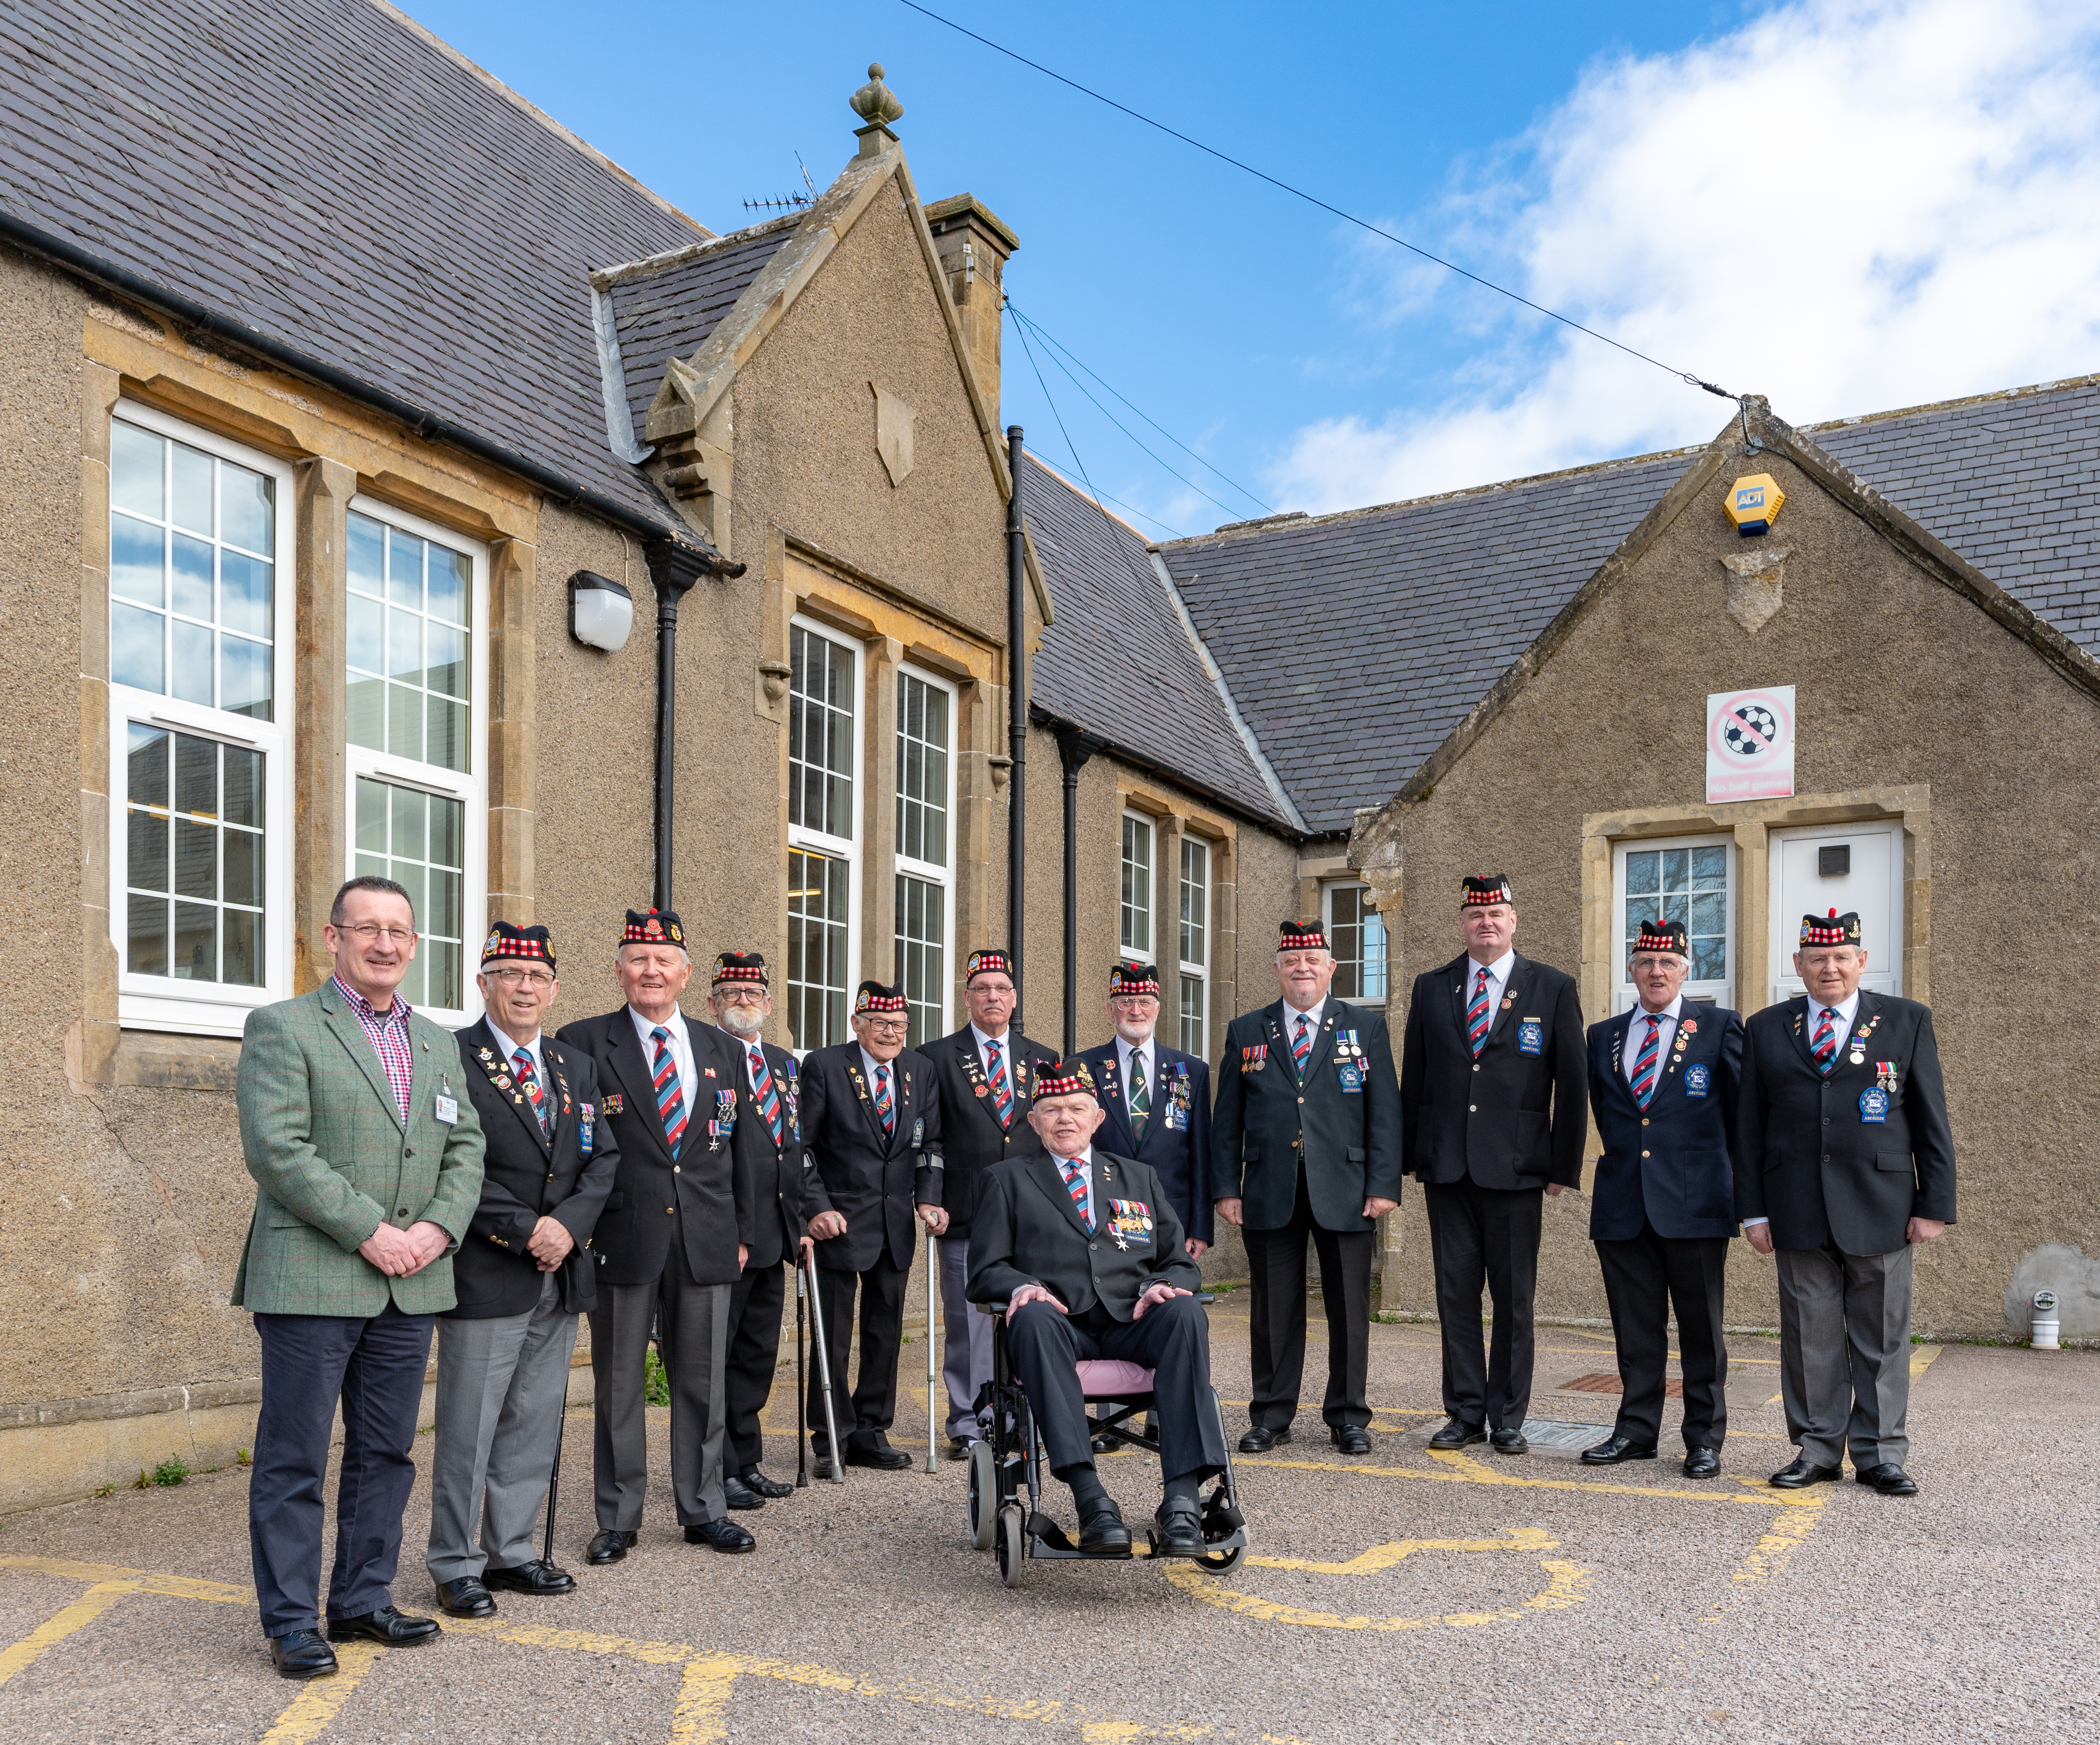 This is from the North East War Veterans Brunch meeting at Cullen Community Centre, Moray, Scotland on Sunday 31 March 2019. Photographed by JASPERIMAGE ©. PICTURE CONTENT:-